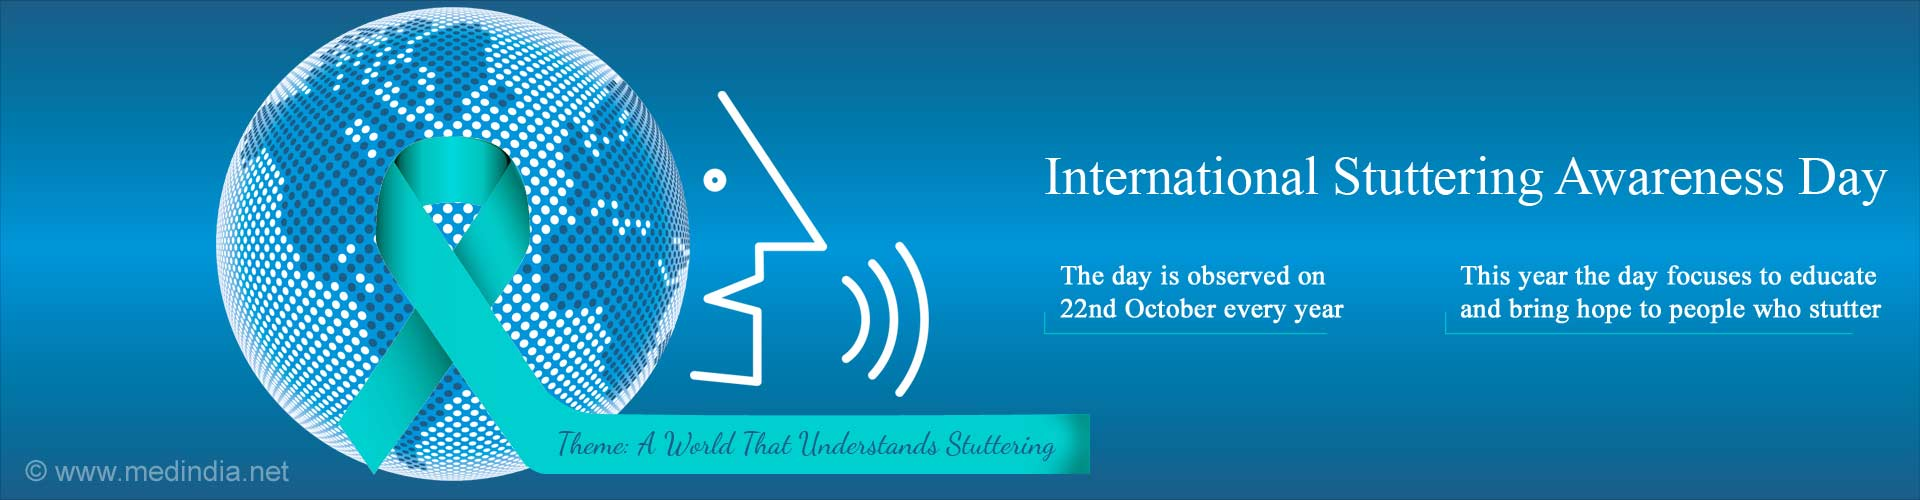 International Stuttering Awareness Day - 'œA World That Understands Stuttering'�